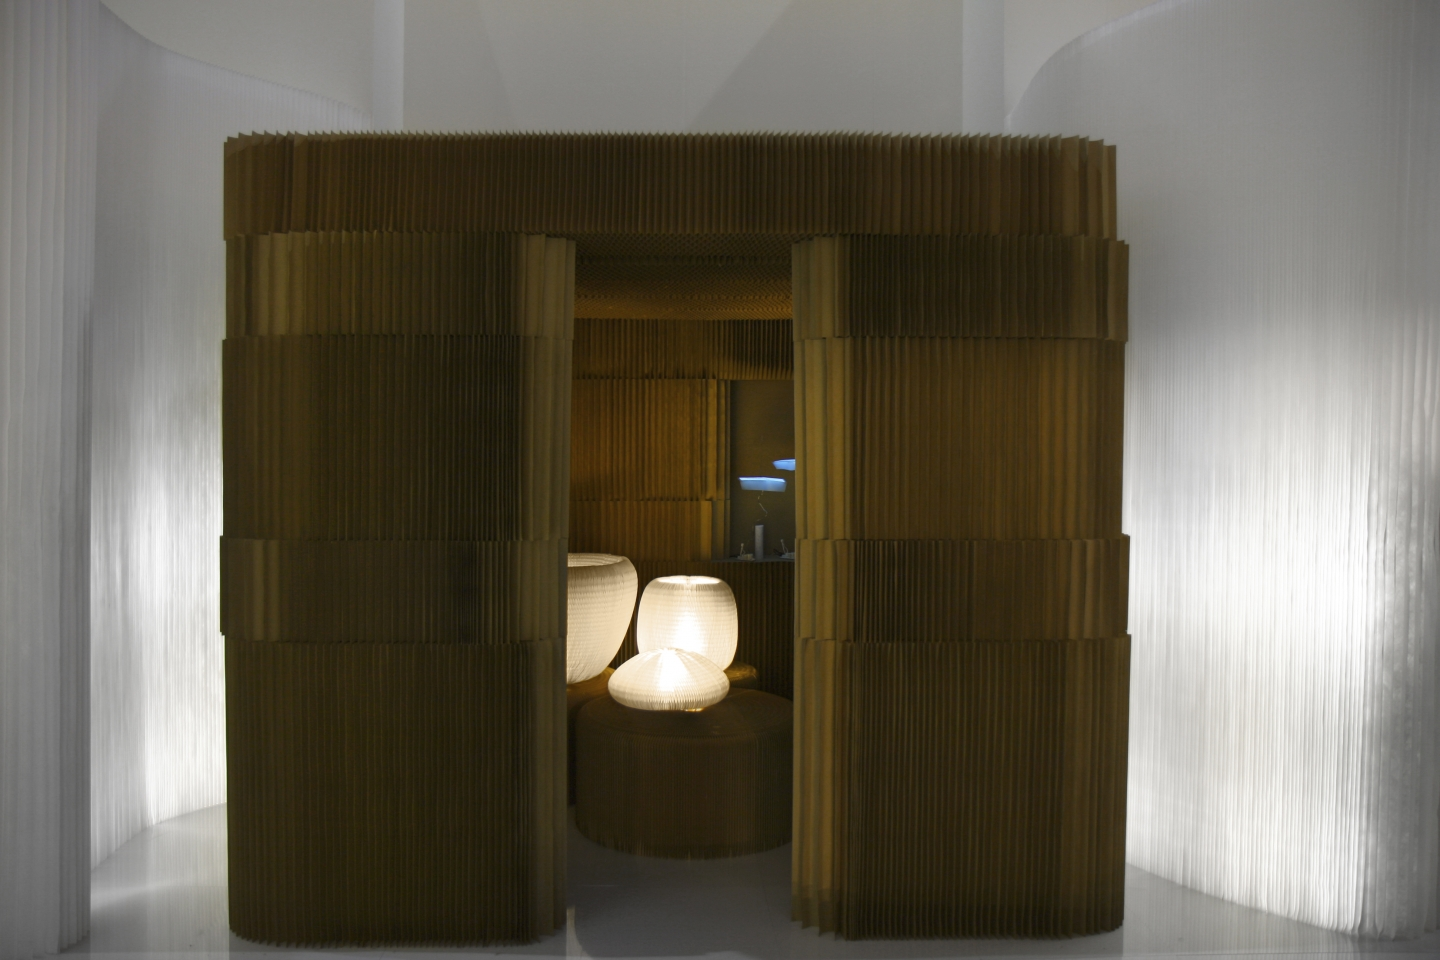 paper softblock / modular room divider + urchin - molo soft collection of flexible, modular space partitions, seating, tables and lighting at Maison & Objet 2010 in Paris